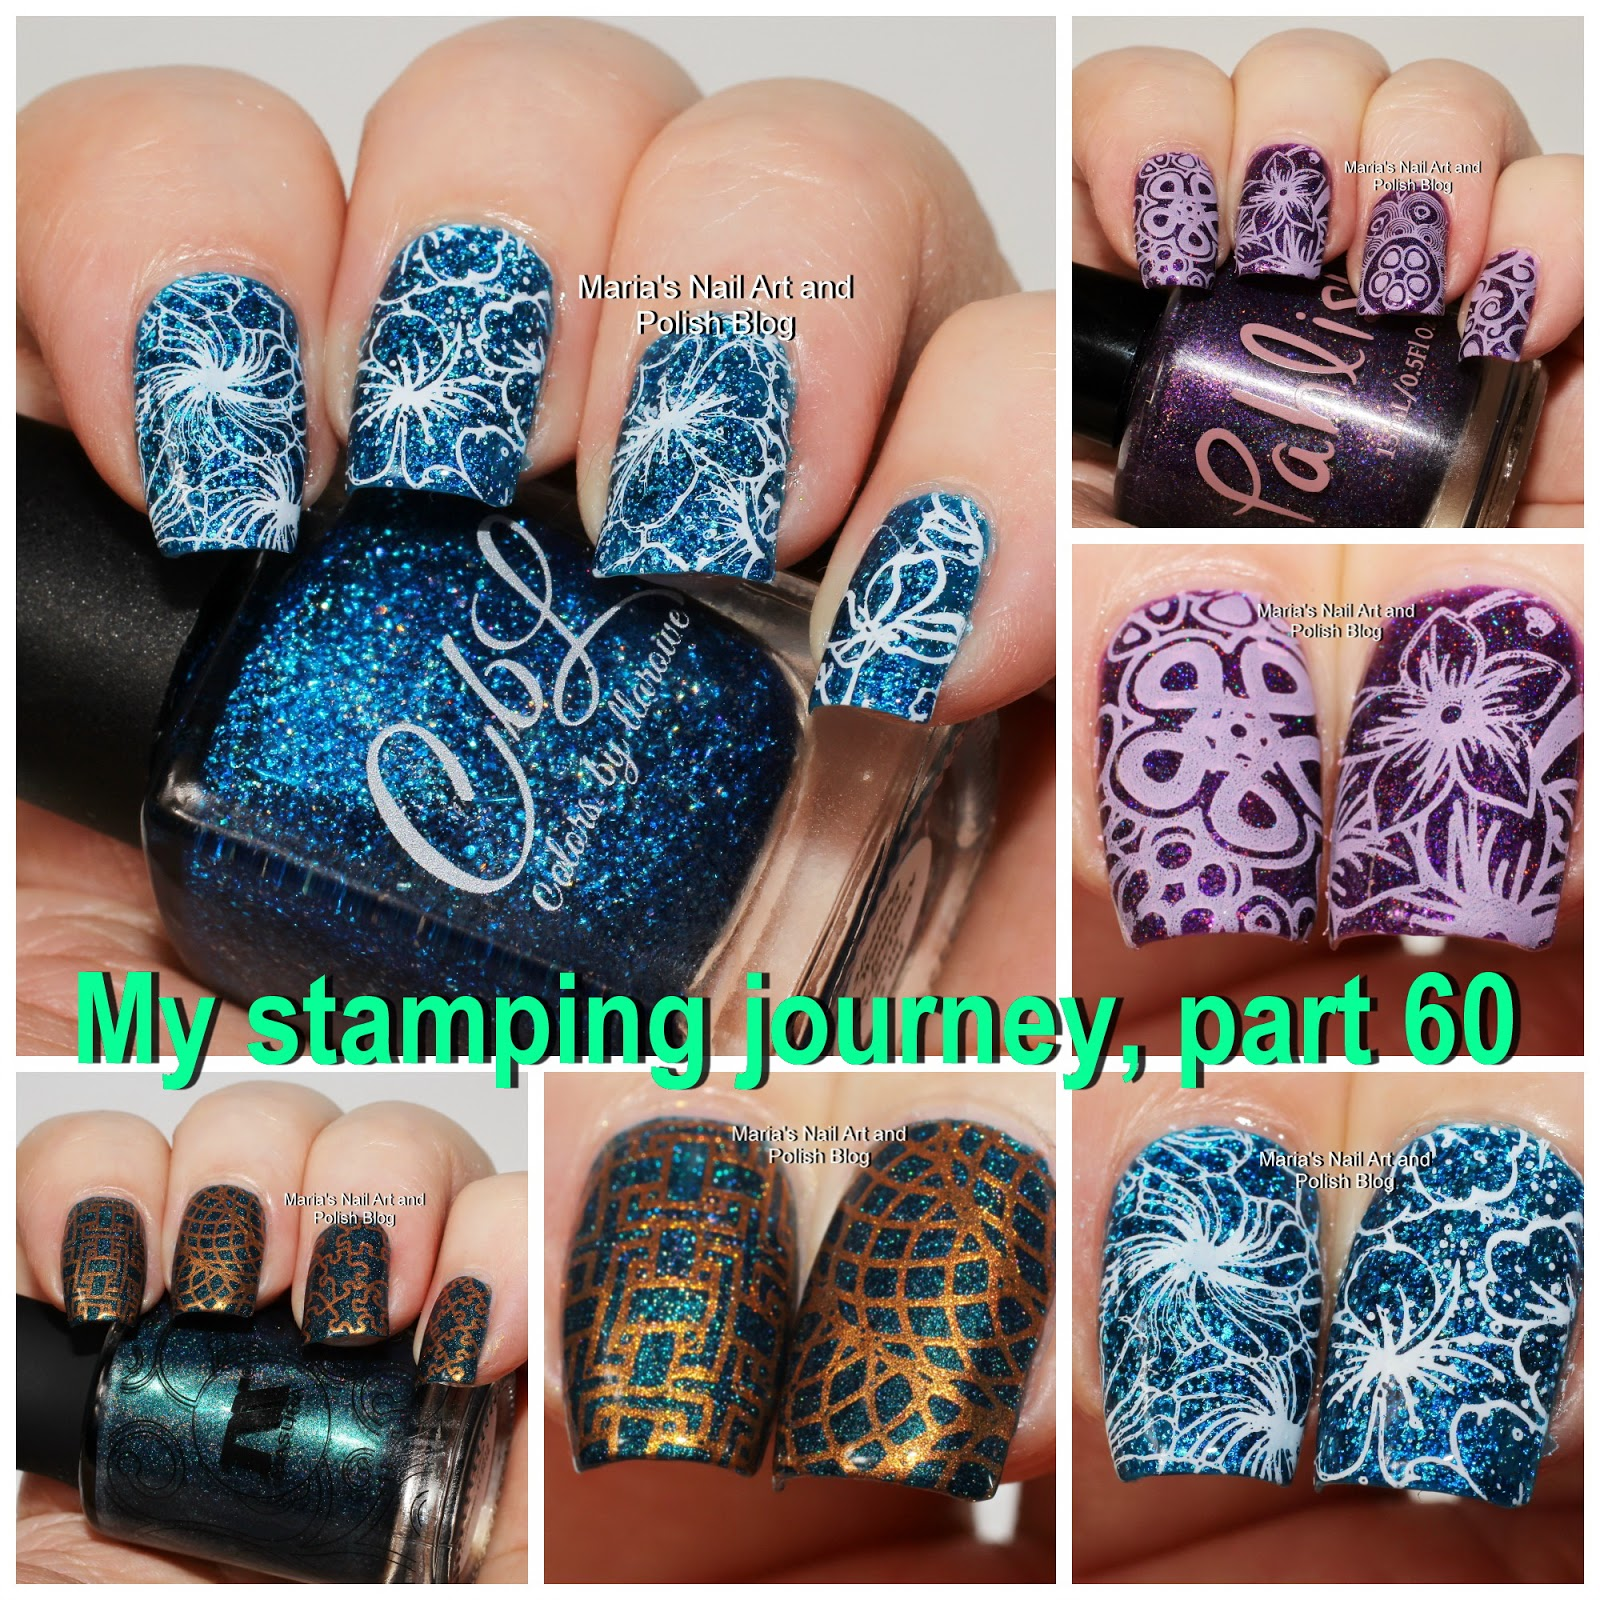 Marias nail art and polish blog its time for part 60 including take 209 210 and 211 prinsesfo Gallery